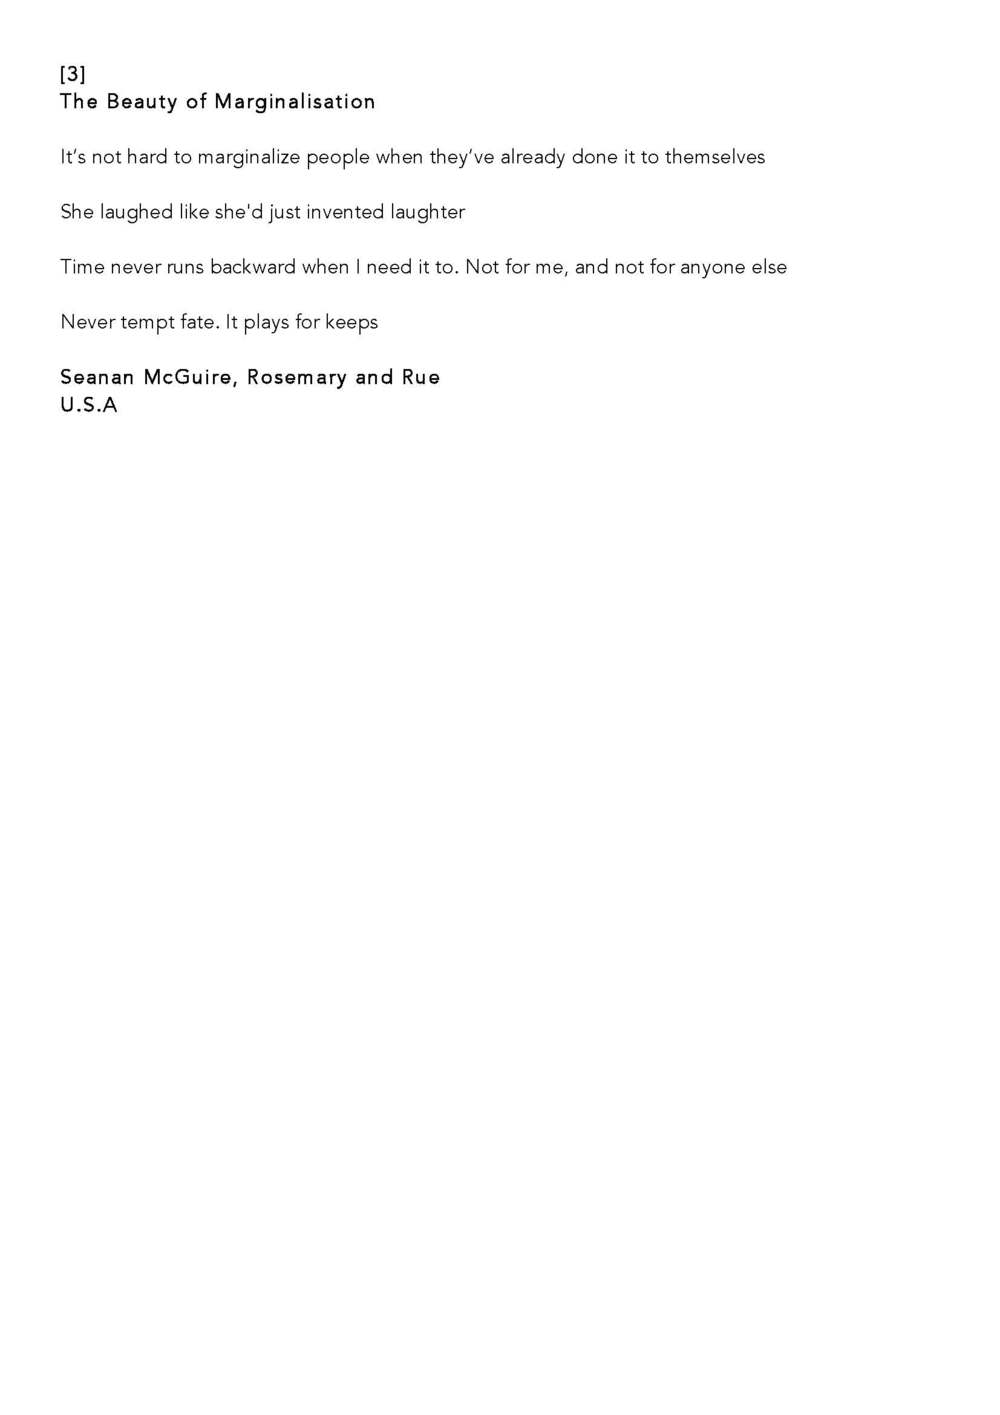 Poetry Collection - Everyone can Poetry _ For 16 Sept 2014_Page_03.jpg